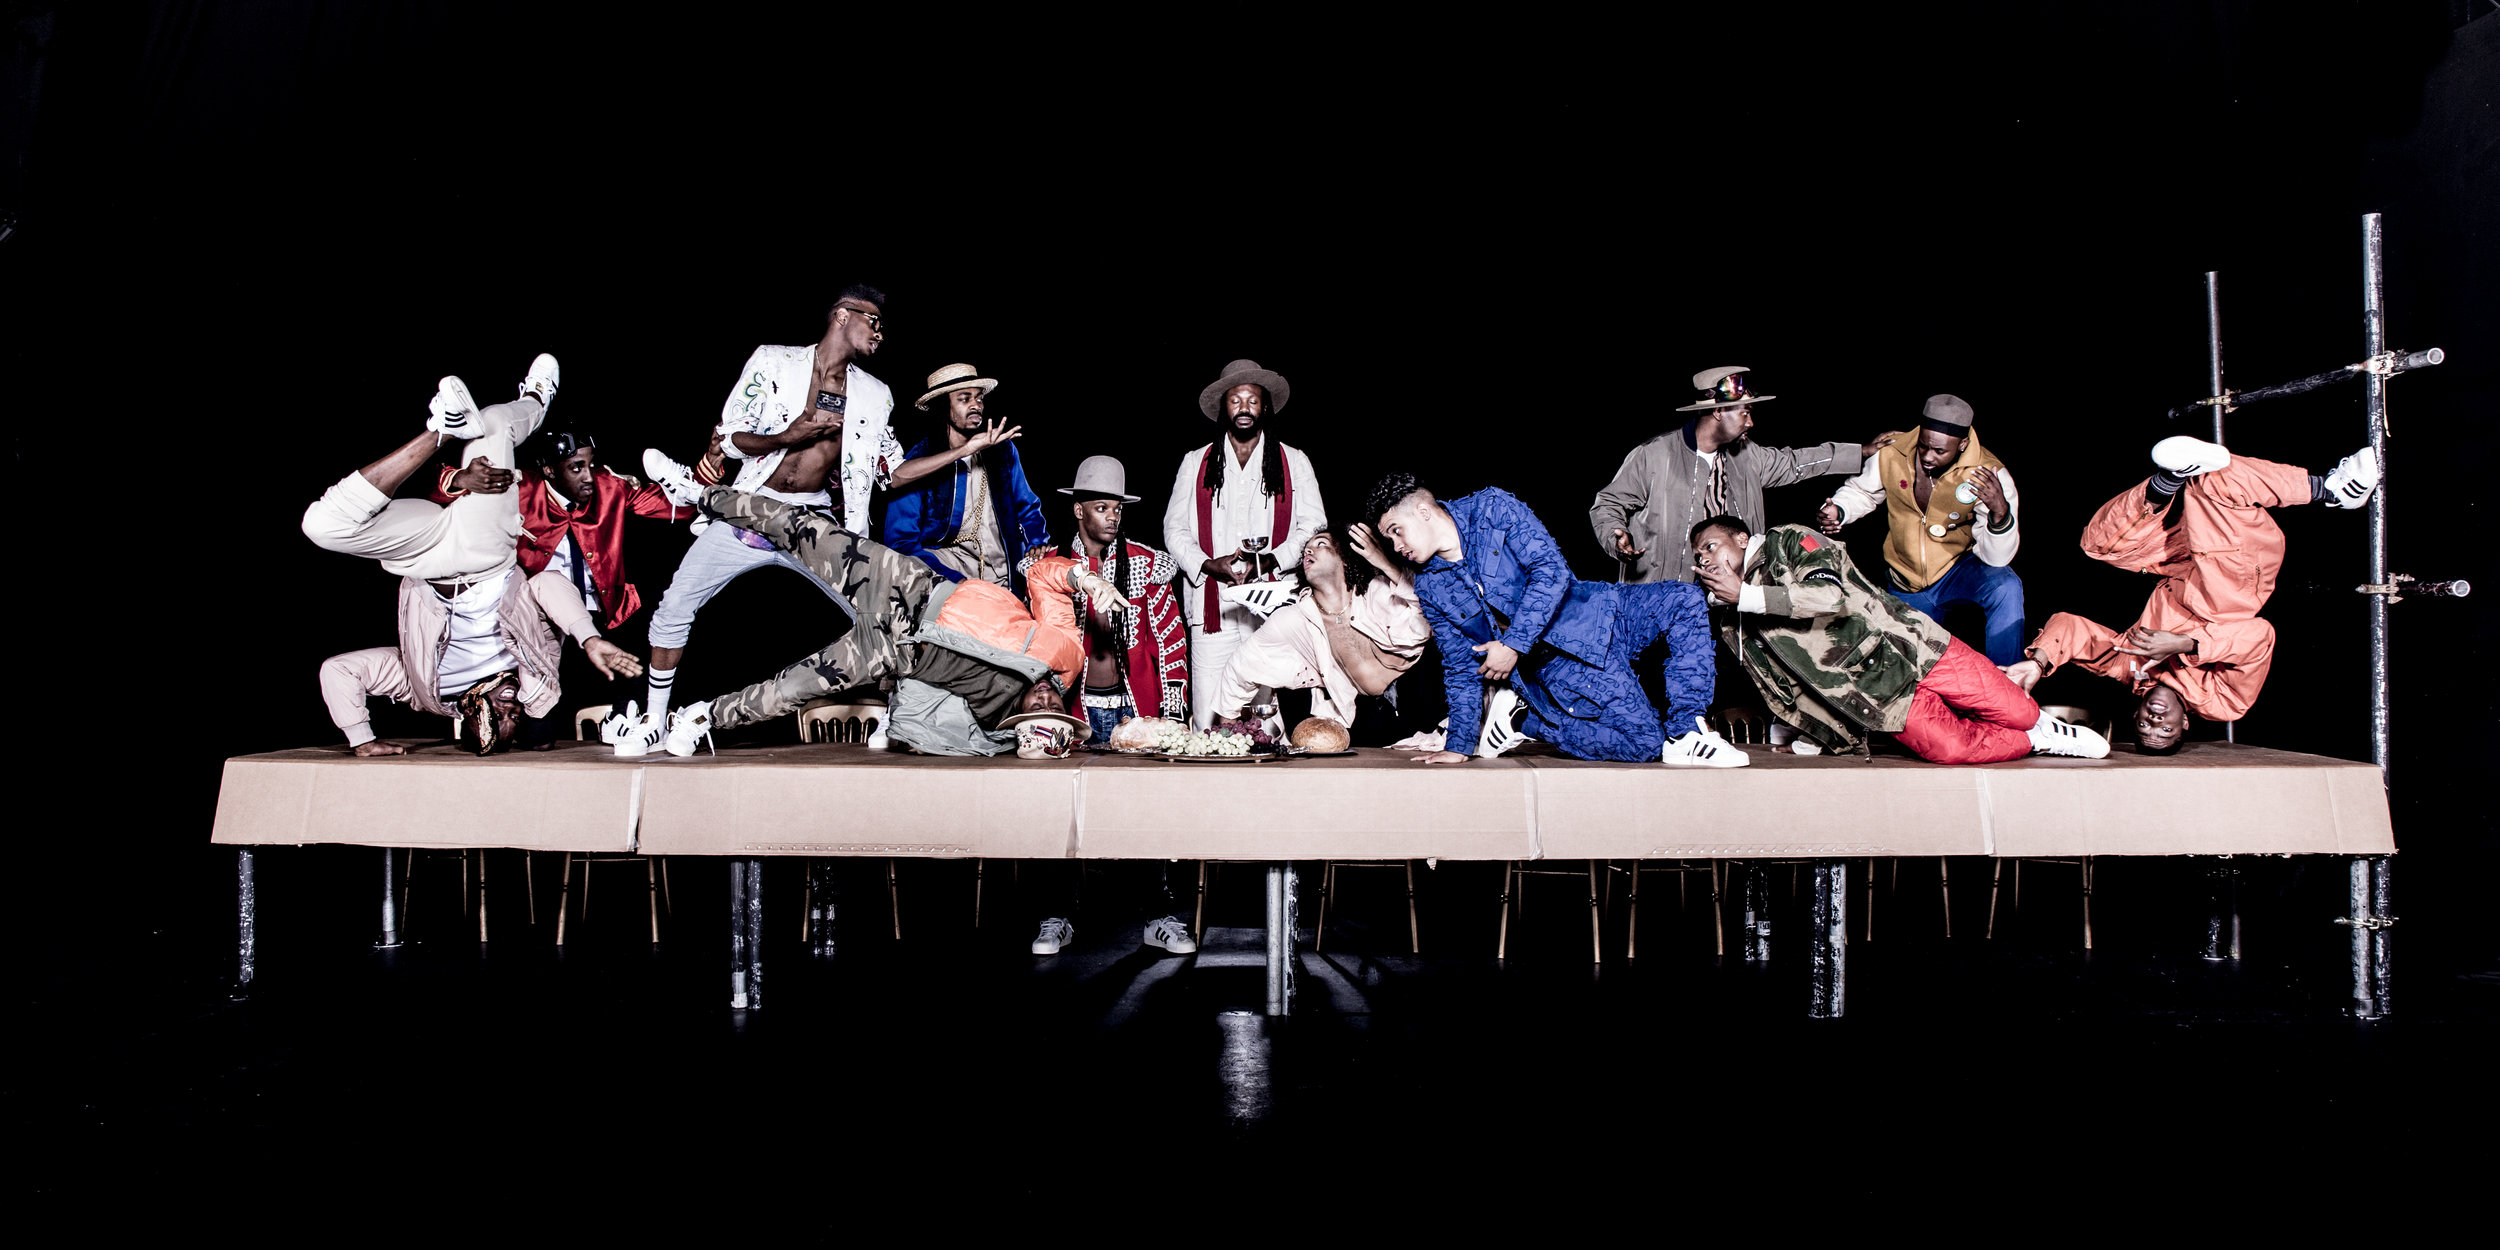 b boy last supper-089.jpg